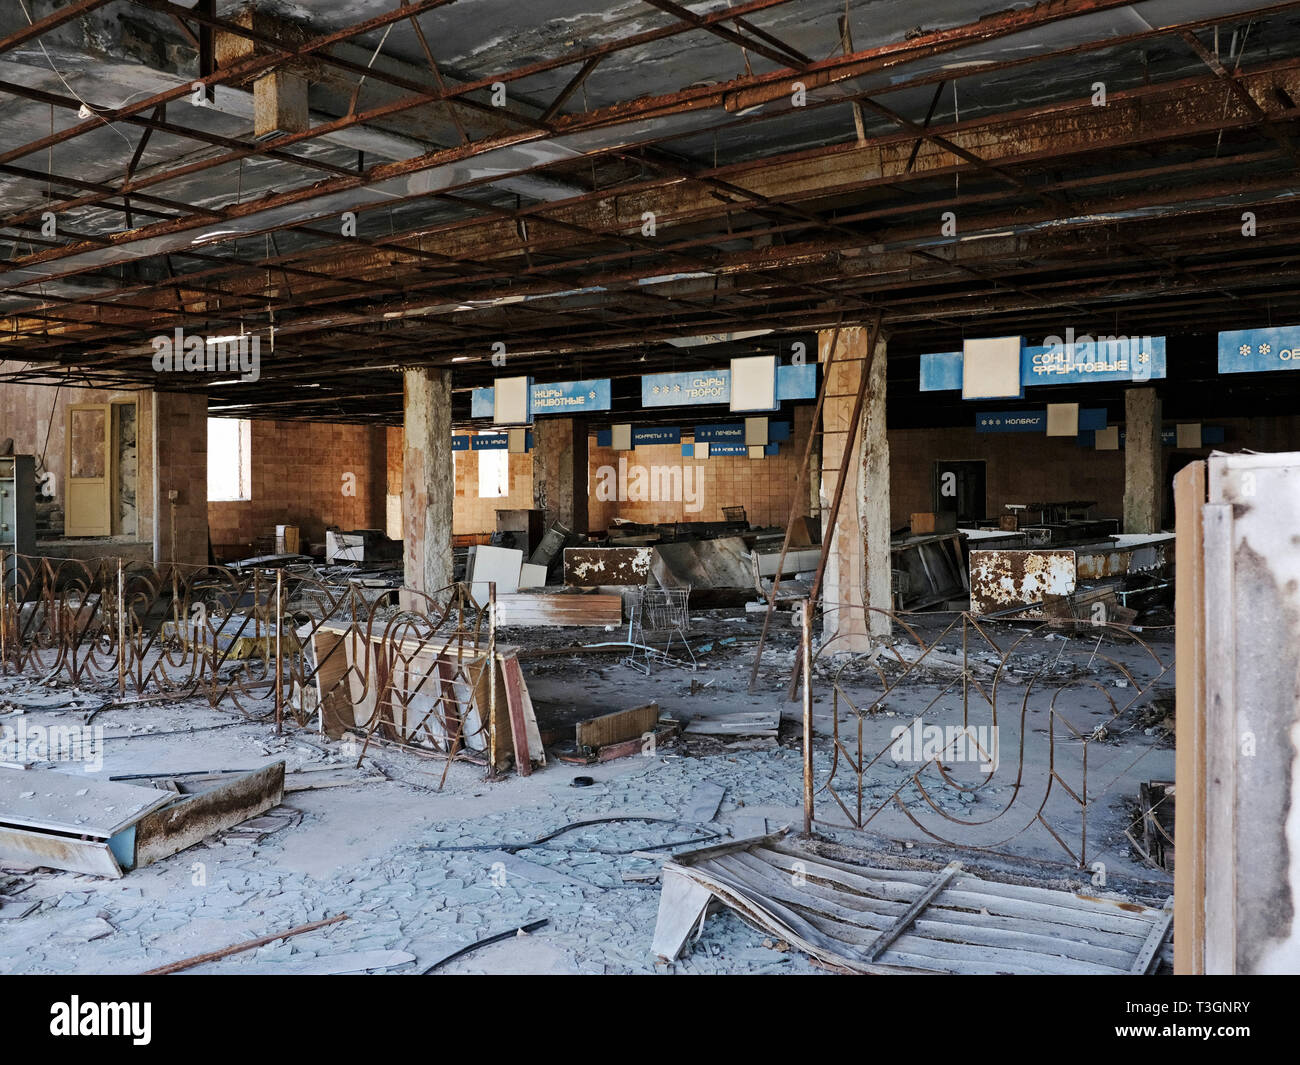 Abandoned supermarket in the ghost town of Pripyat inside the exclusion zone of Chernobyl, Ukraine, April 2019 Stock Photo